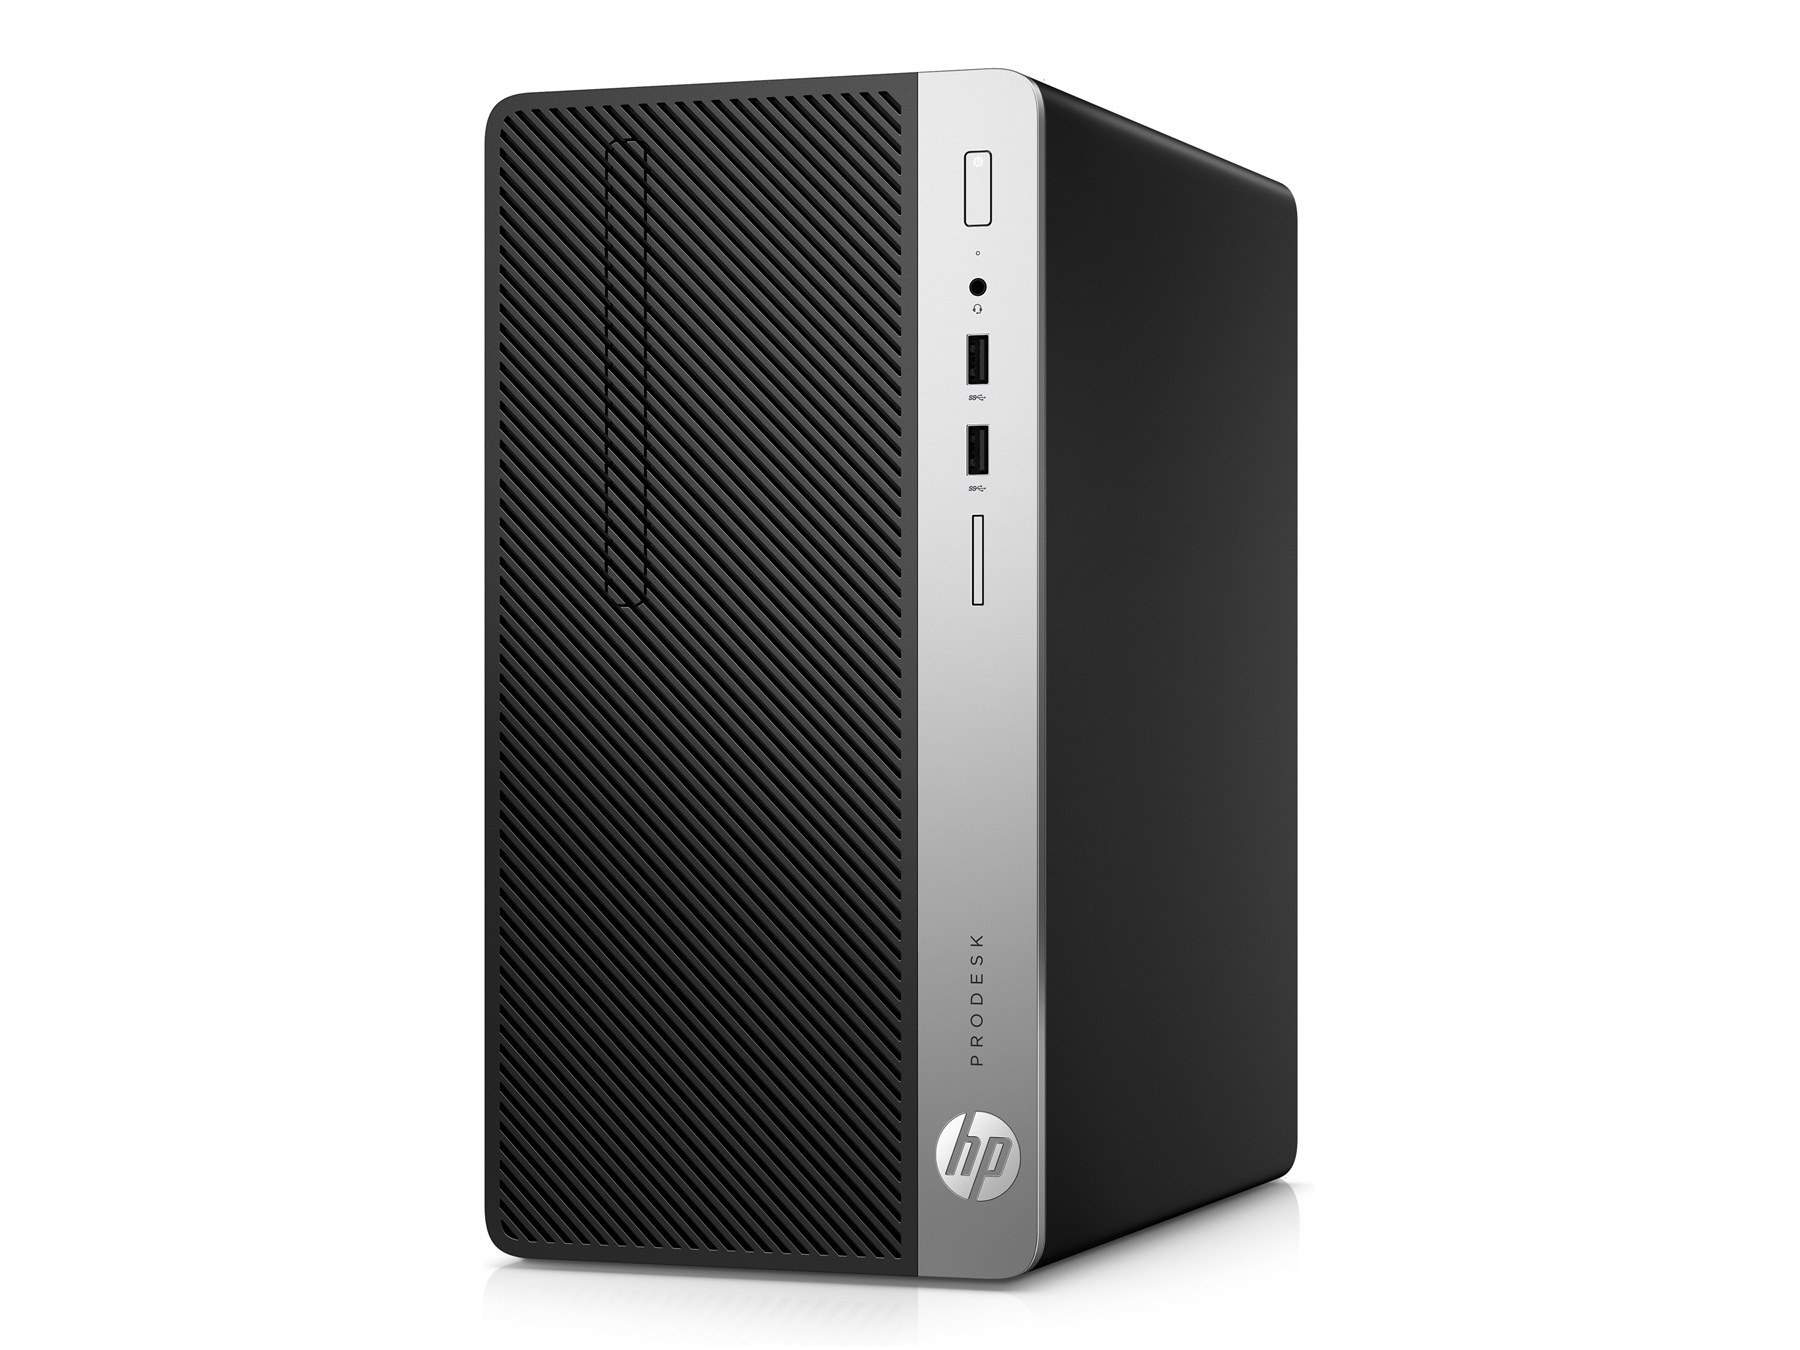 HP Prodesk 400 G4 MT(1HT54PA) /Black